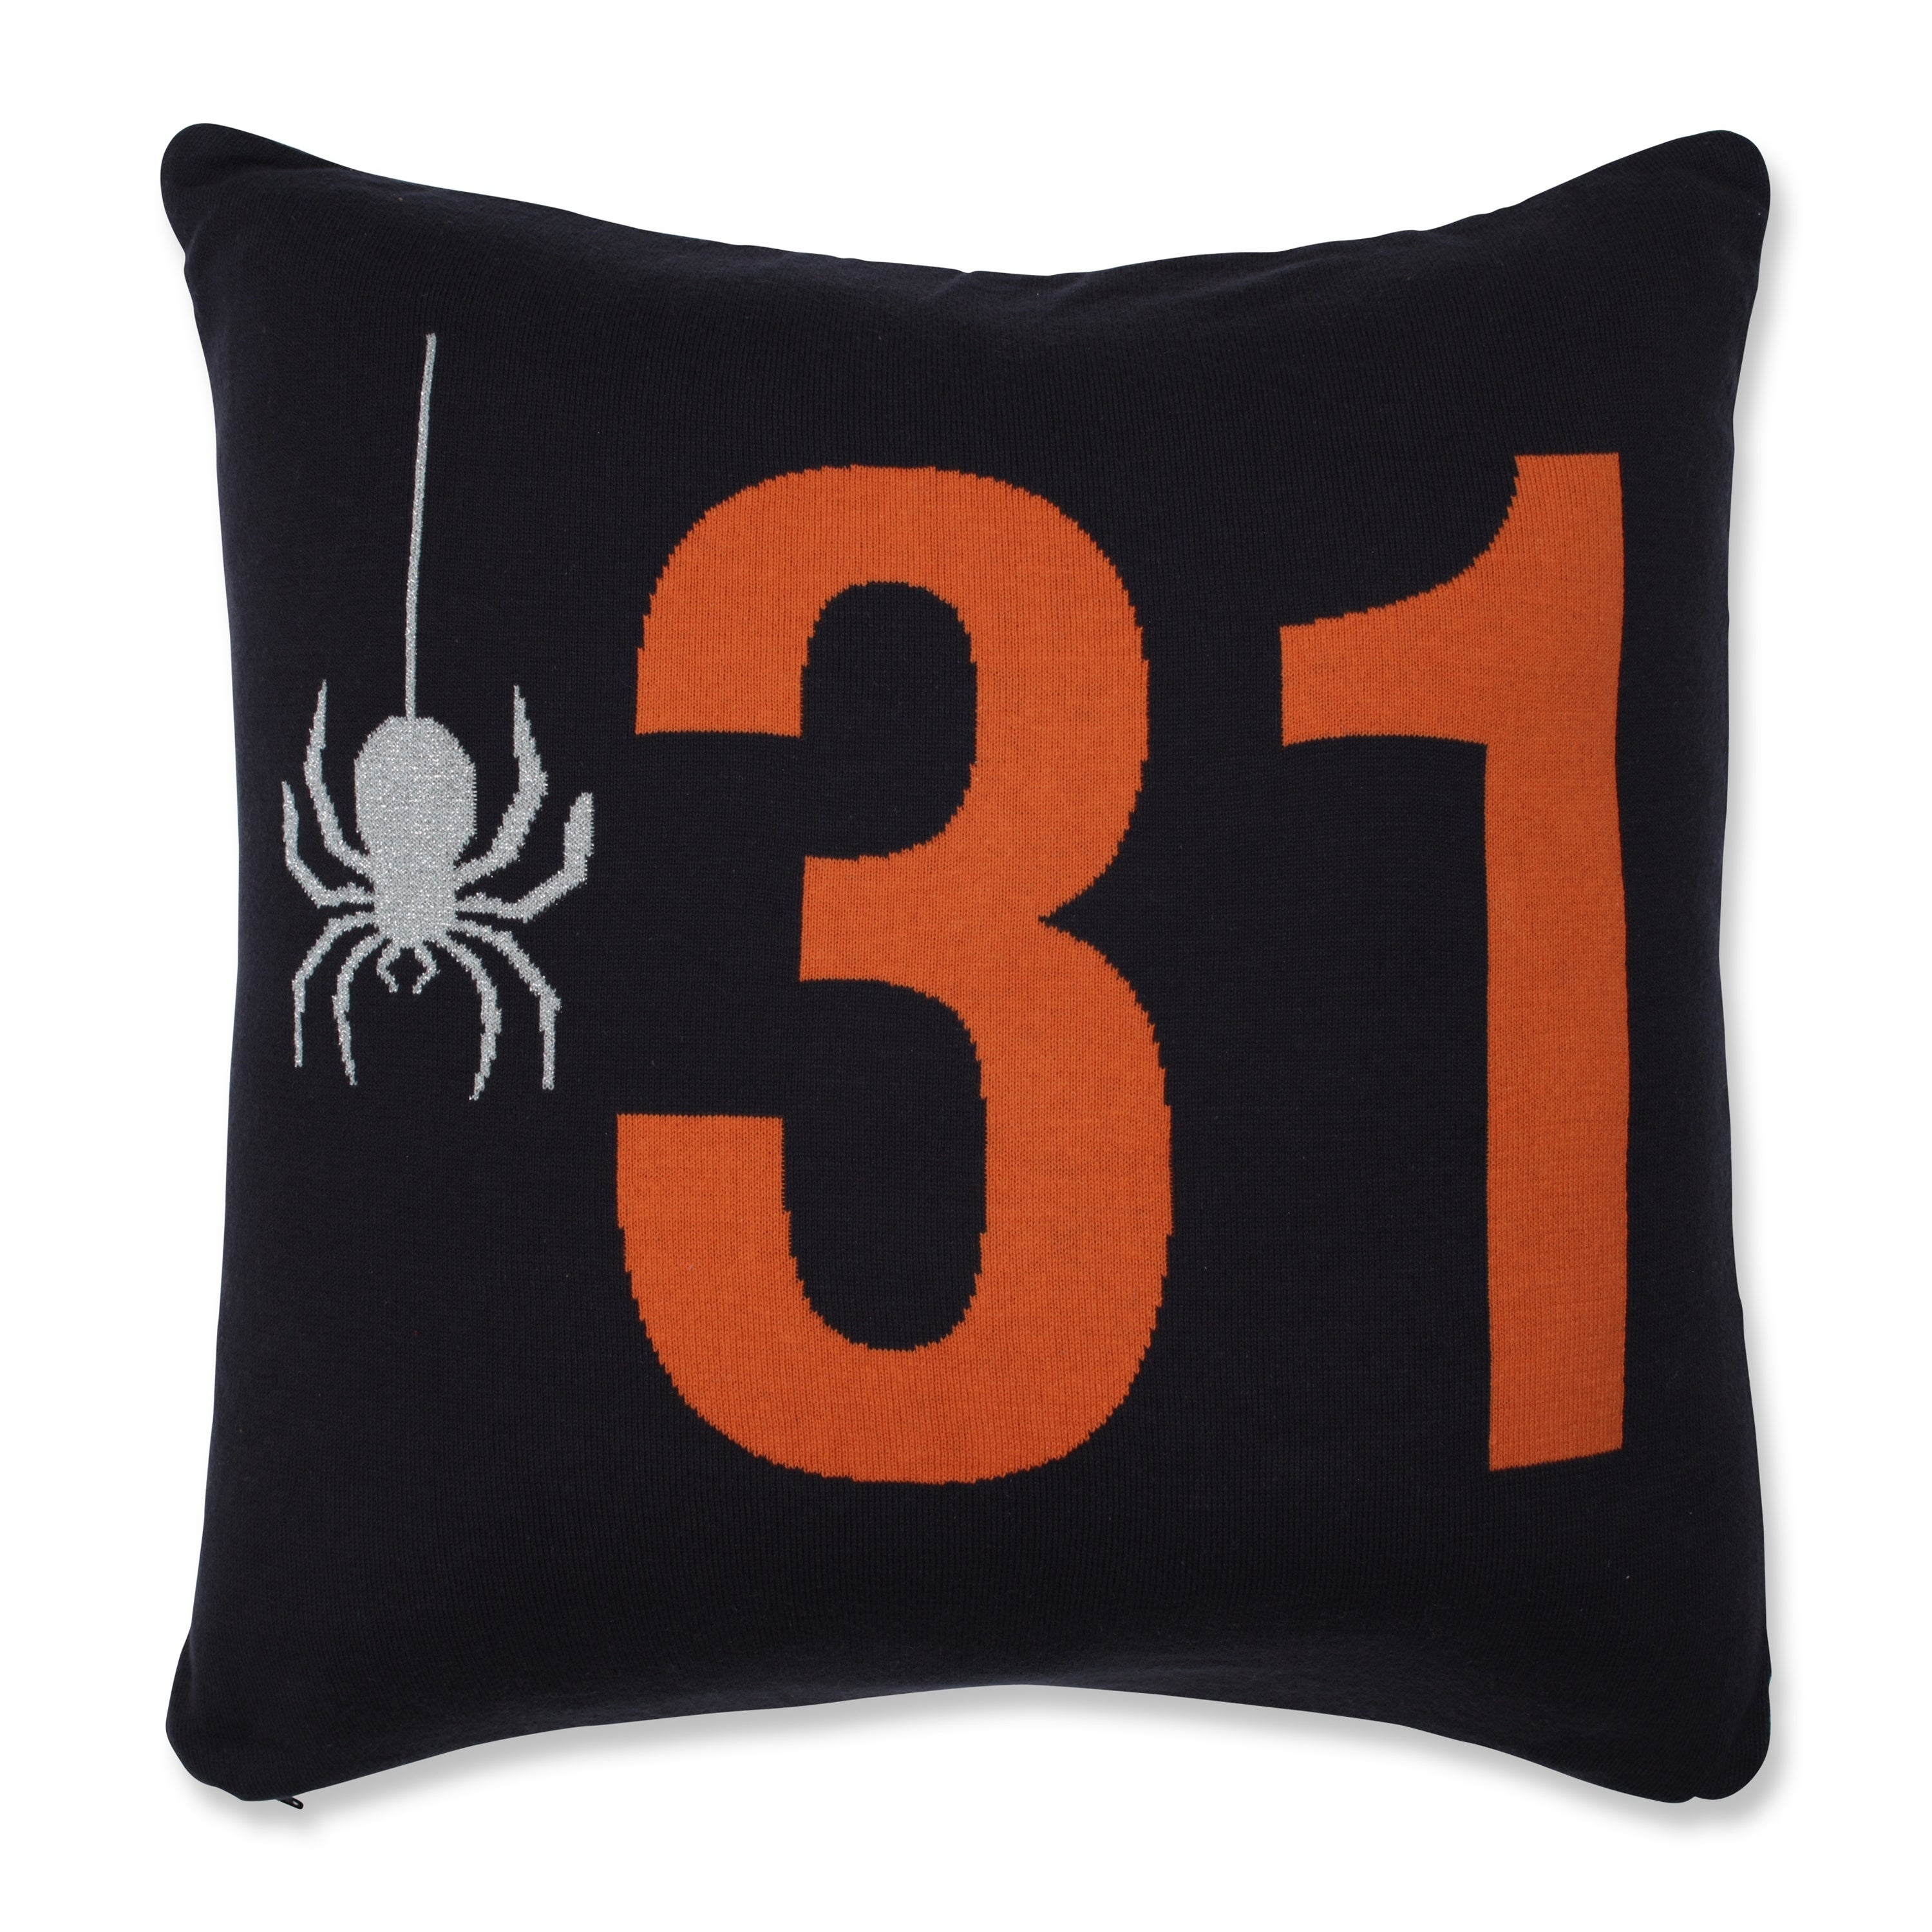 Shop Pillow Perfect Spider 31 Orange 18 Inch Throw Pillow Overstock 29297672